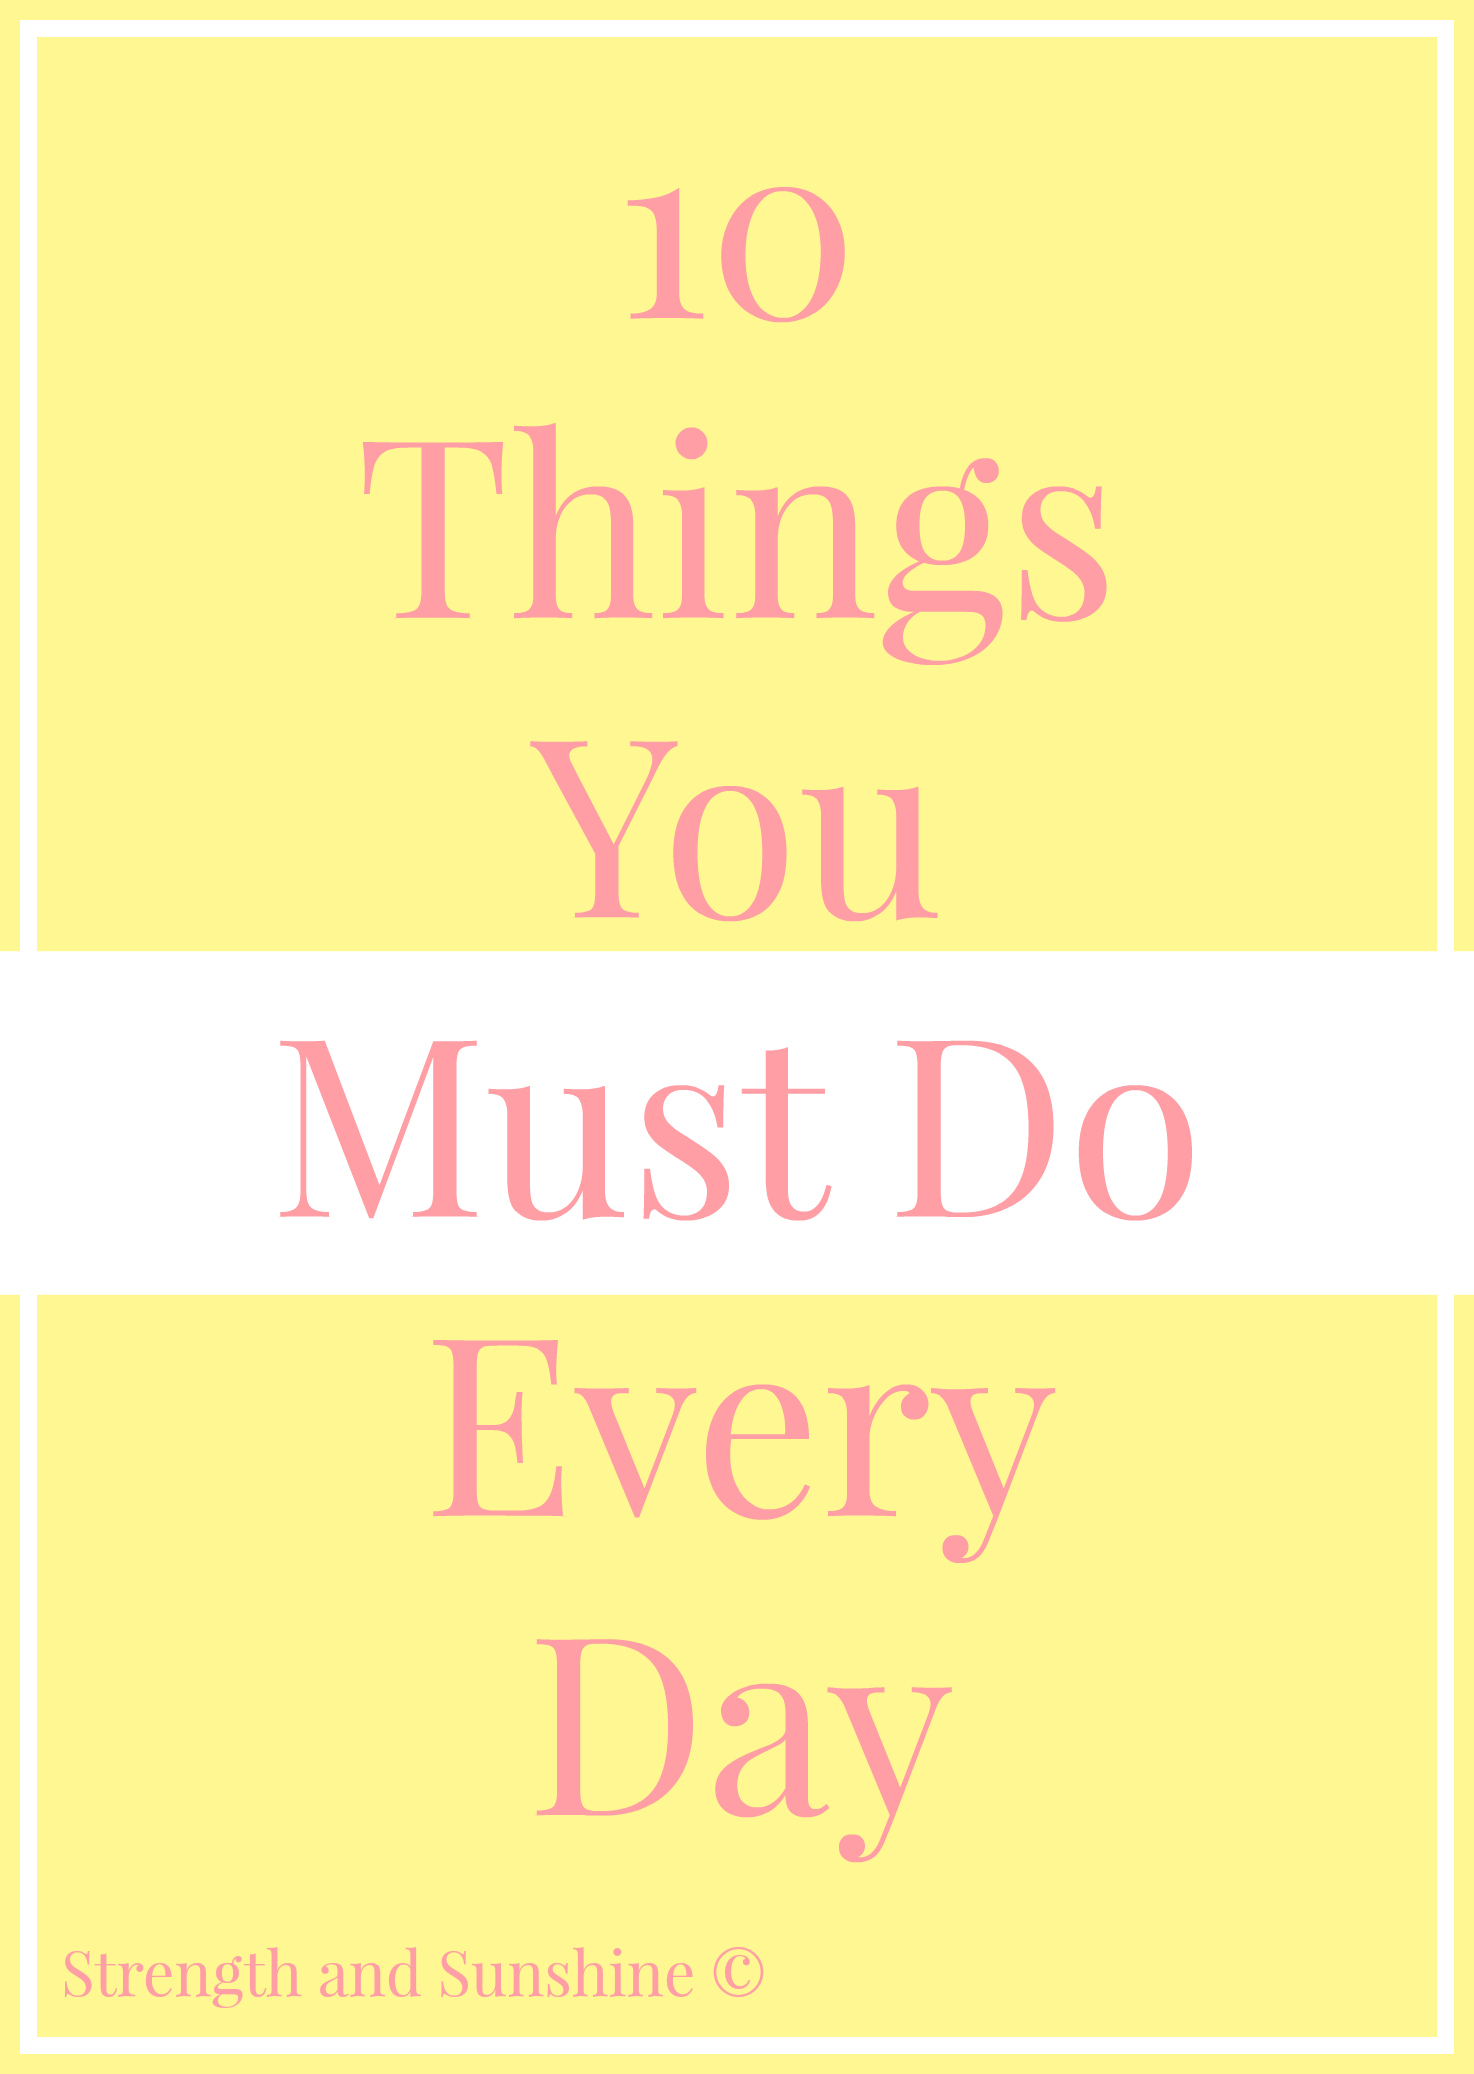 10 Things You Must Do Every Day | Strength and Sunshine @RebeccaGF666 #motivation